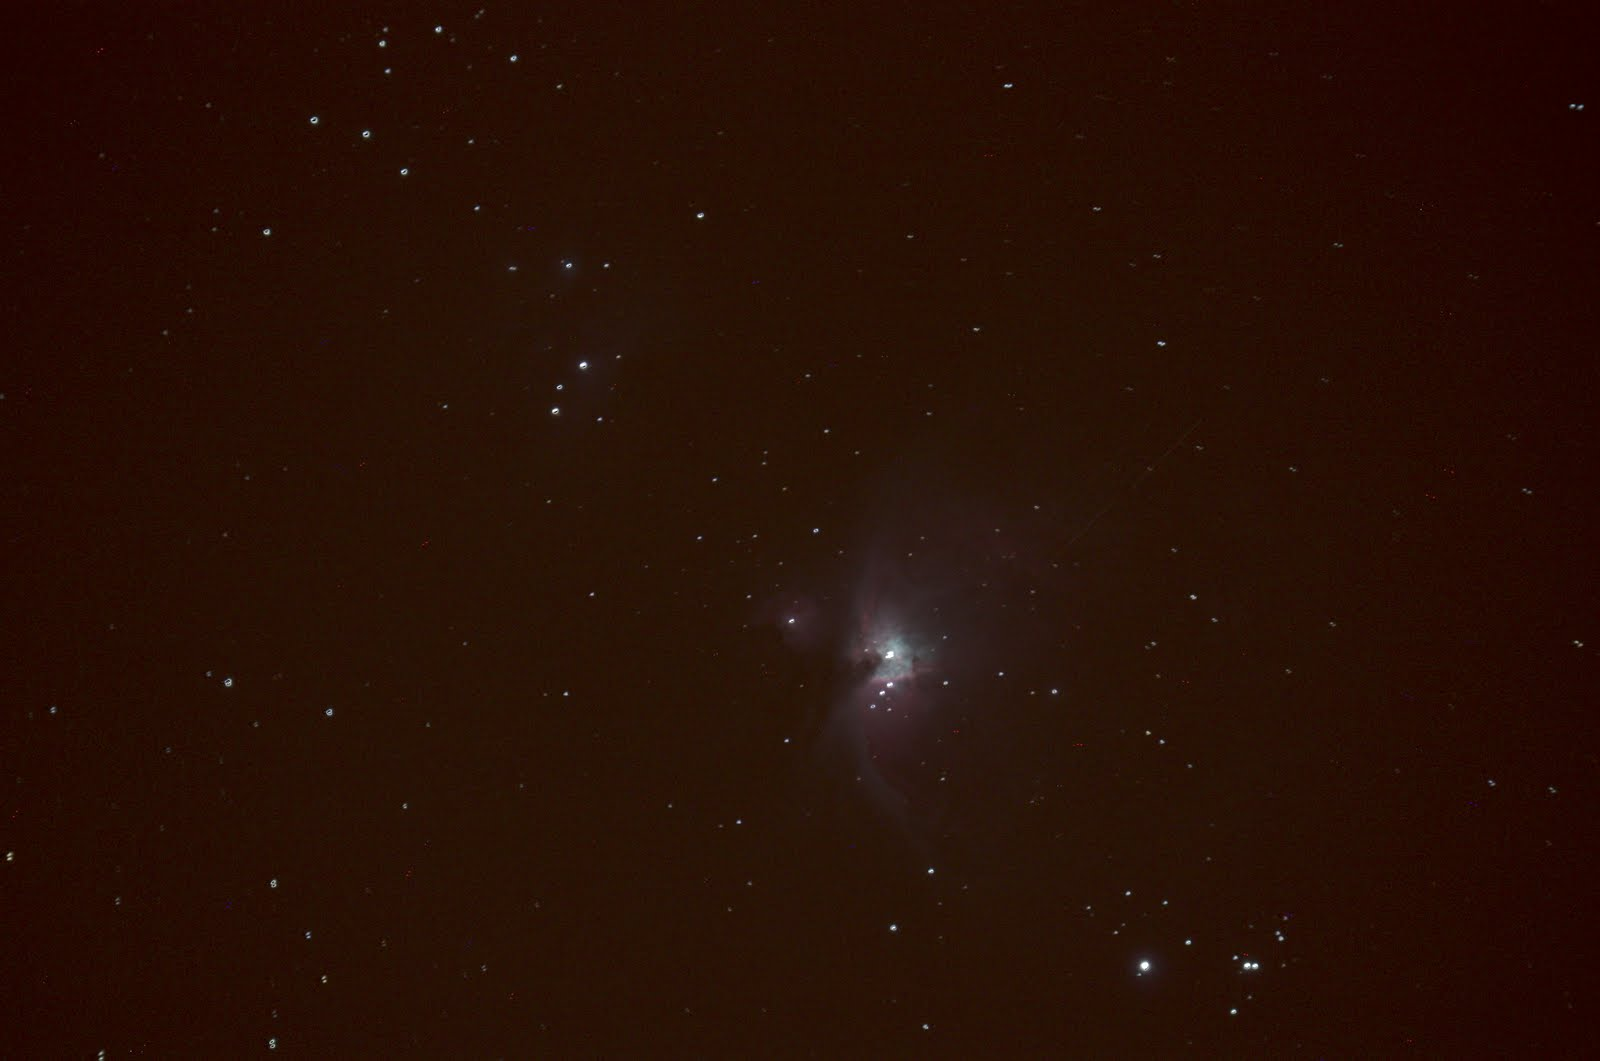 Great Nebula in Orion Viewed through Binoculars - Pics ...